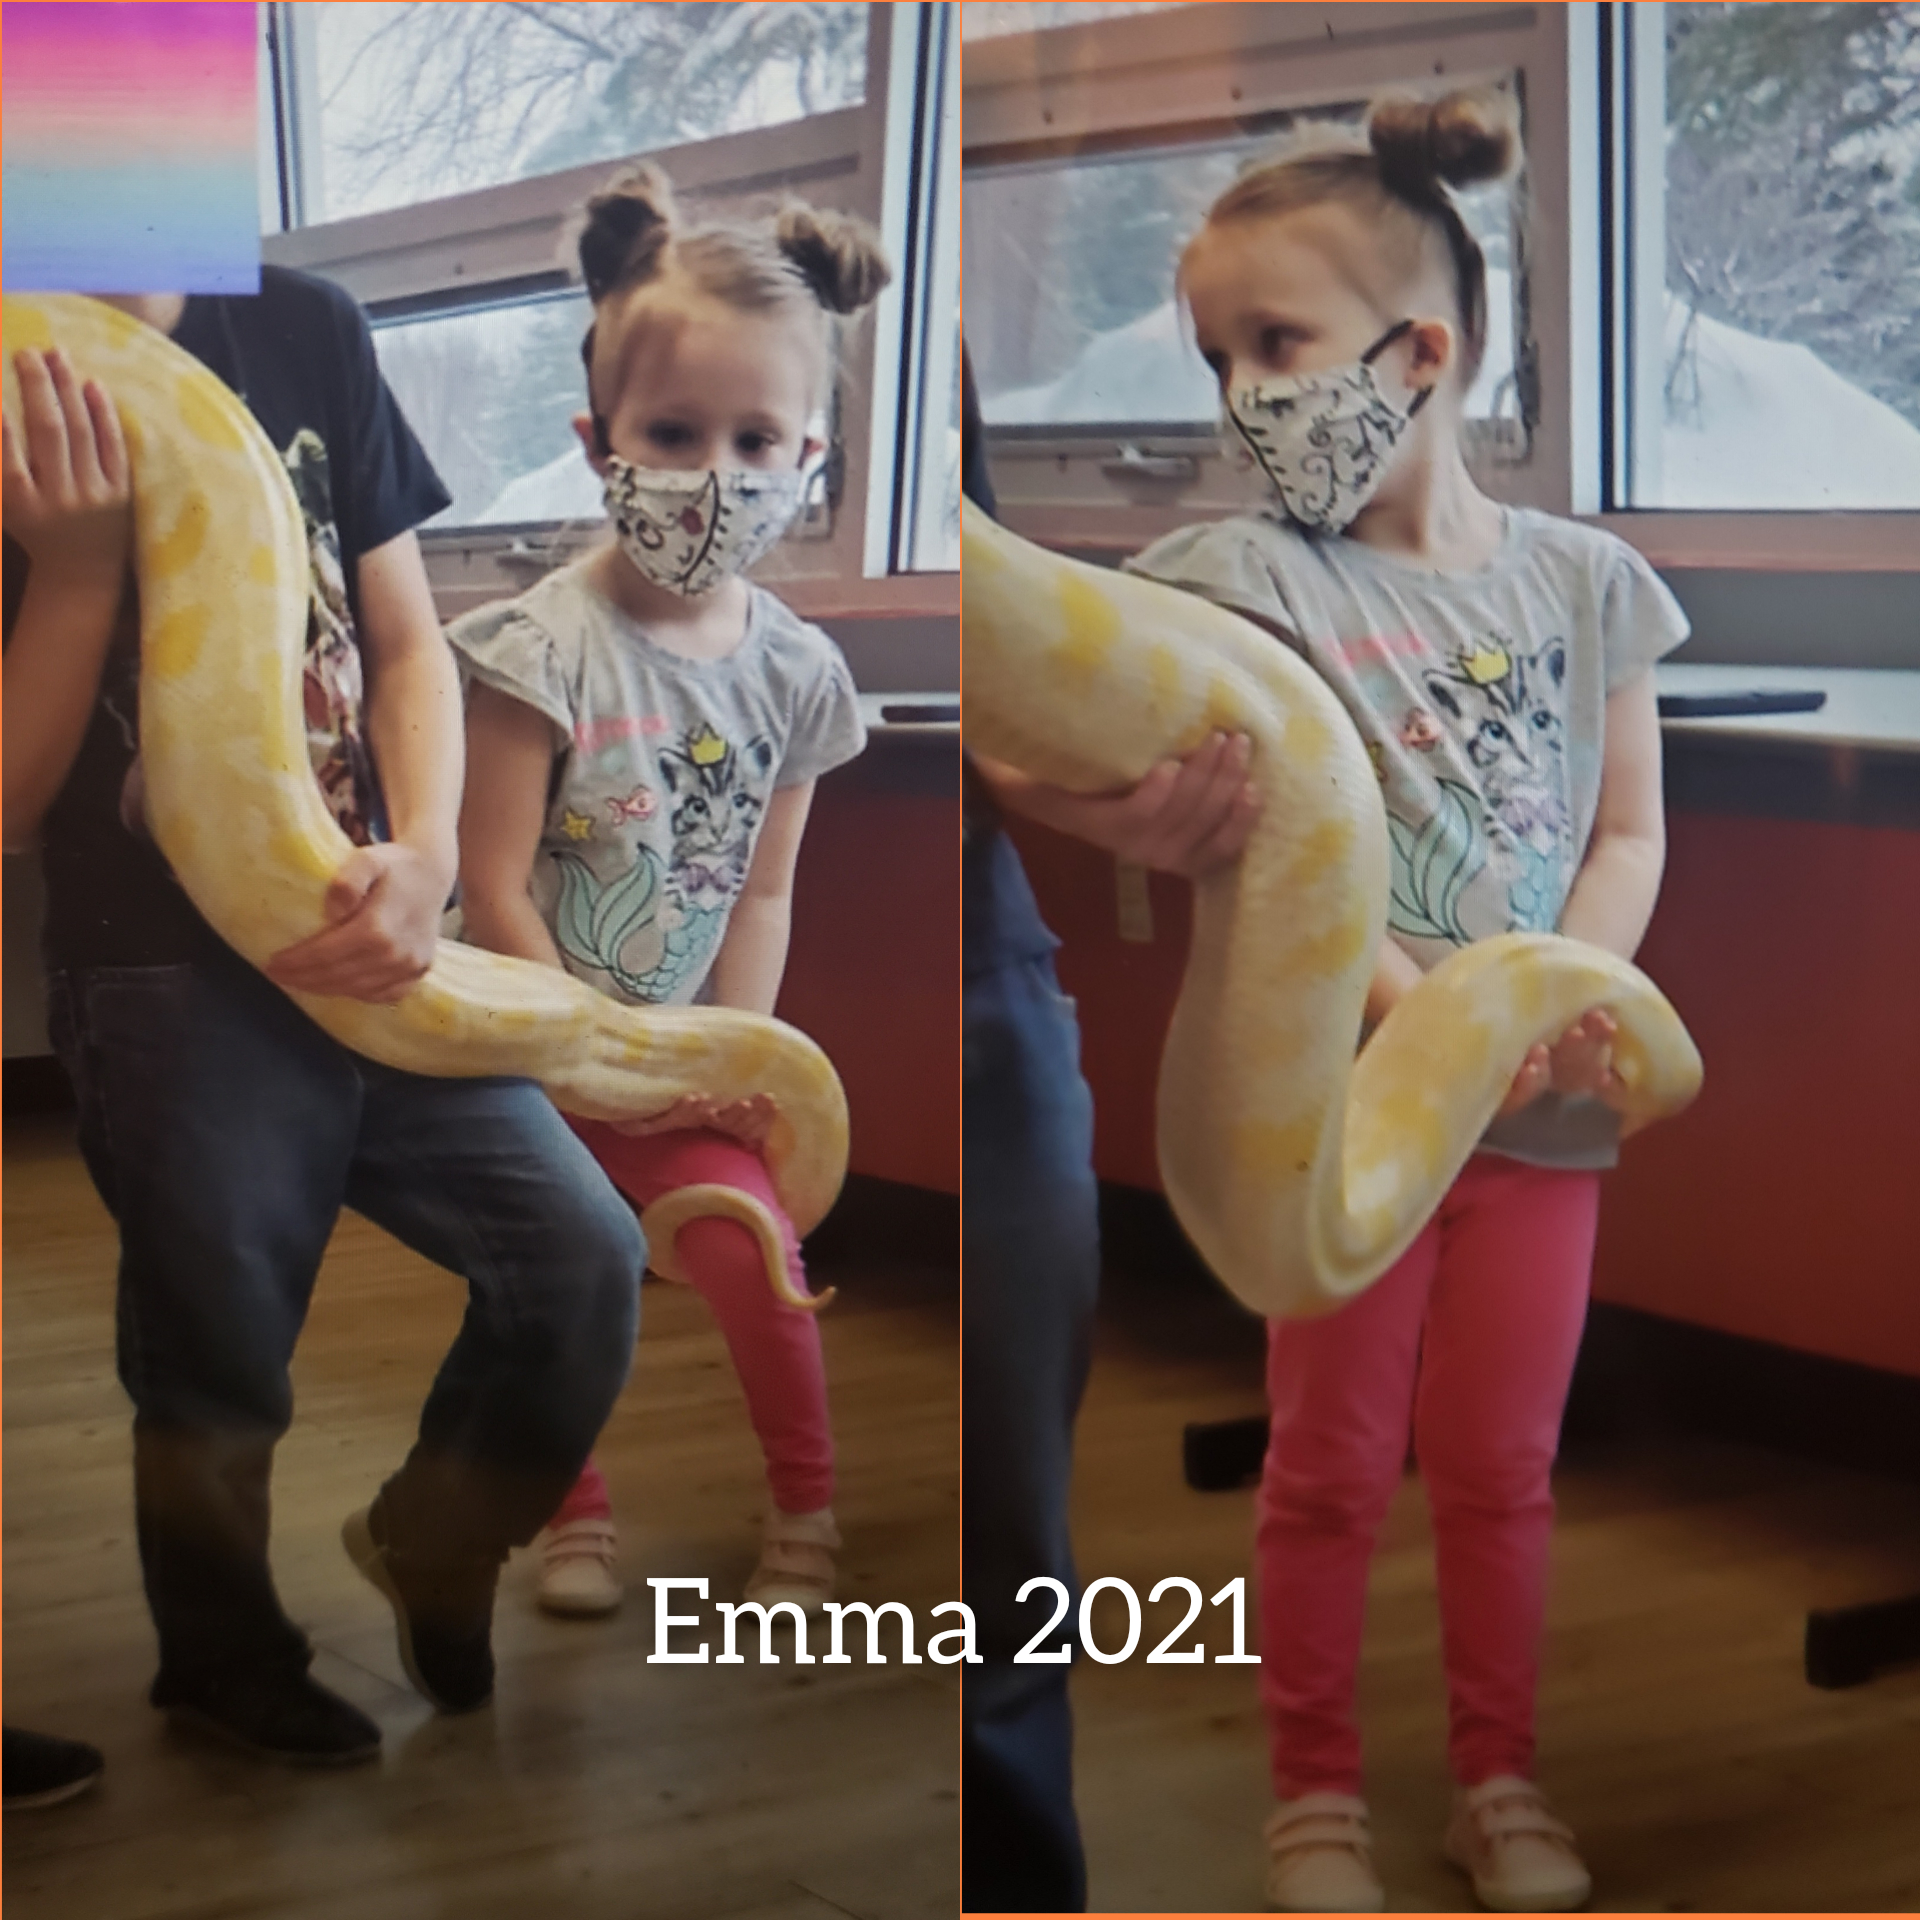 Emma and the Snake